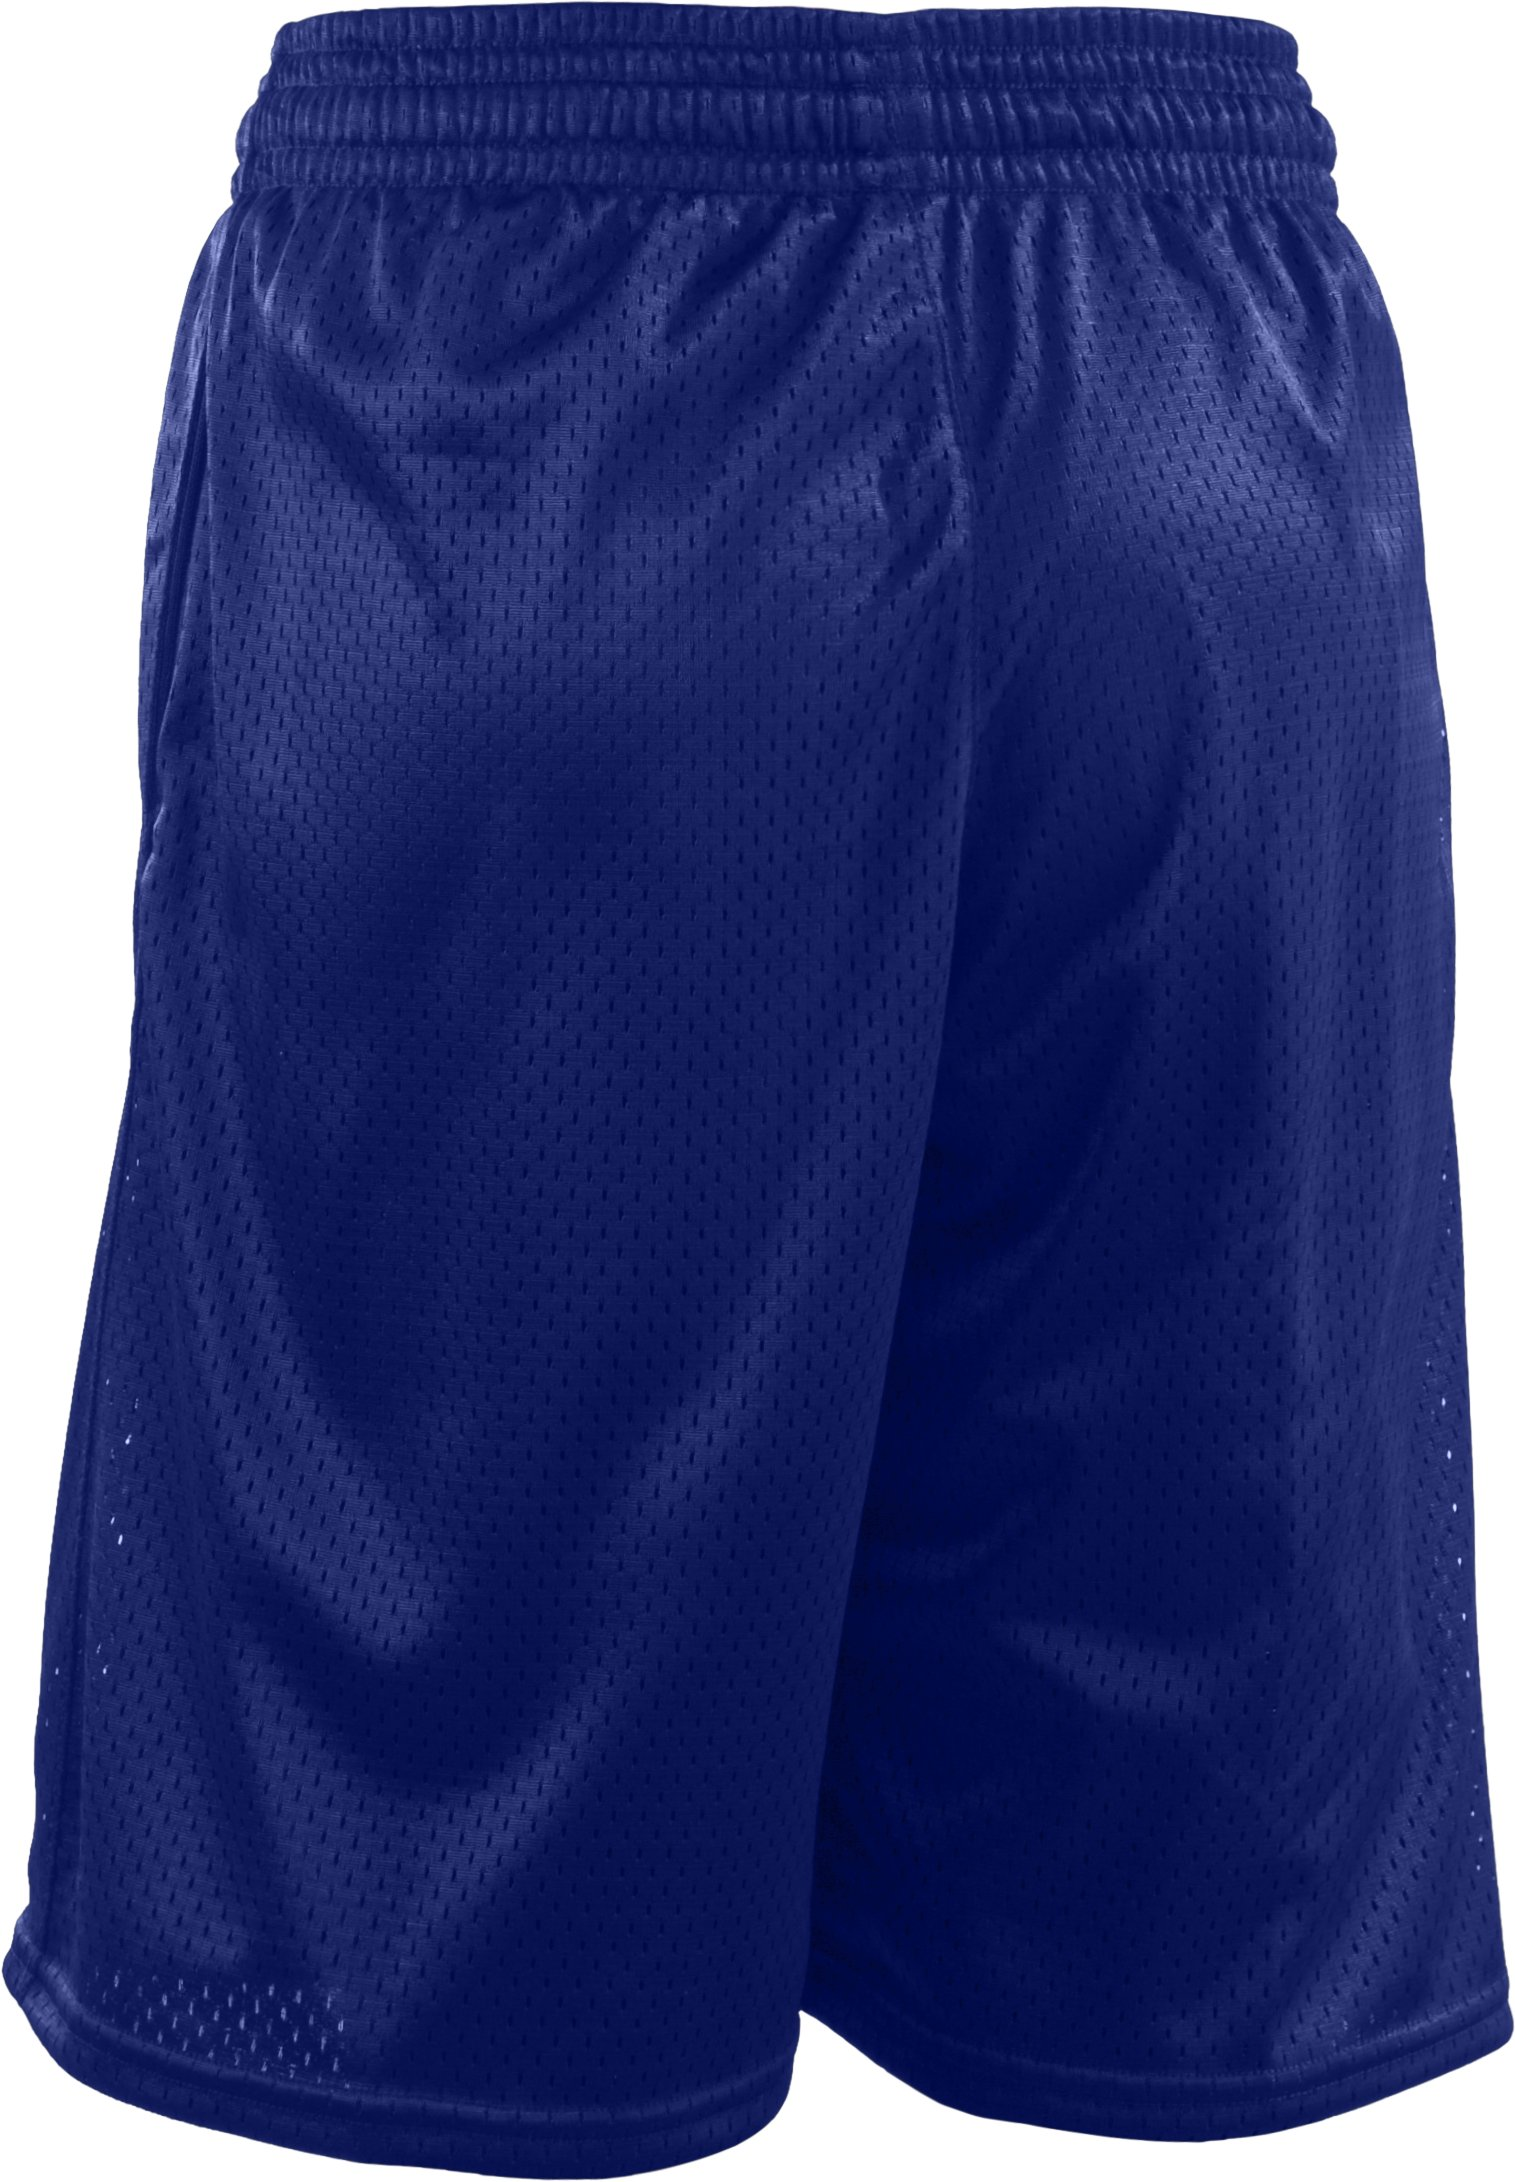 Boys' UA Dominate Mesh Shorts, Royal